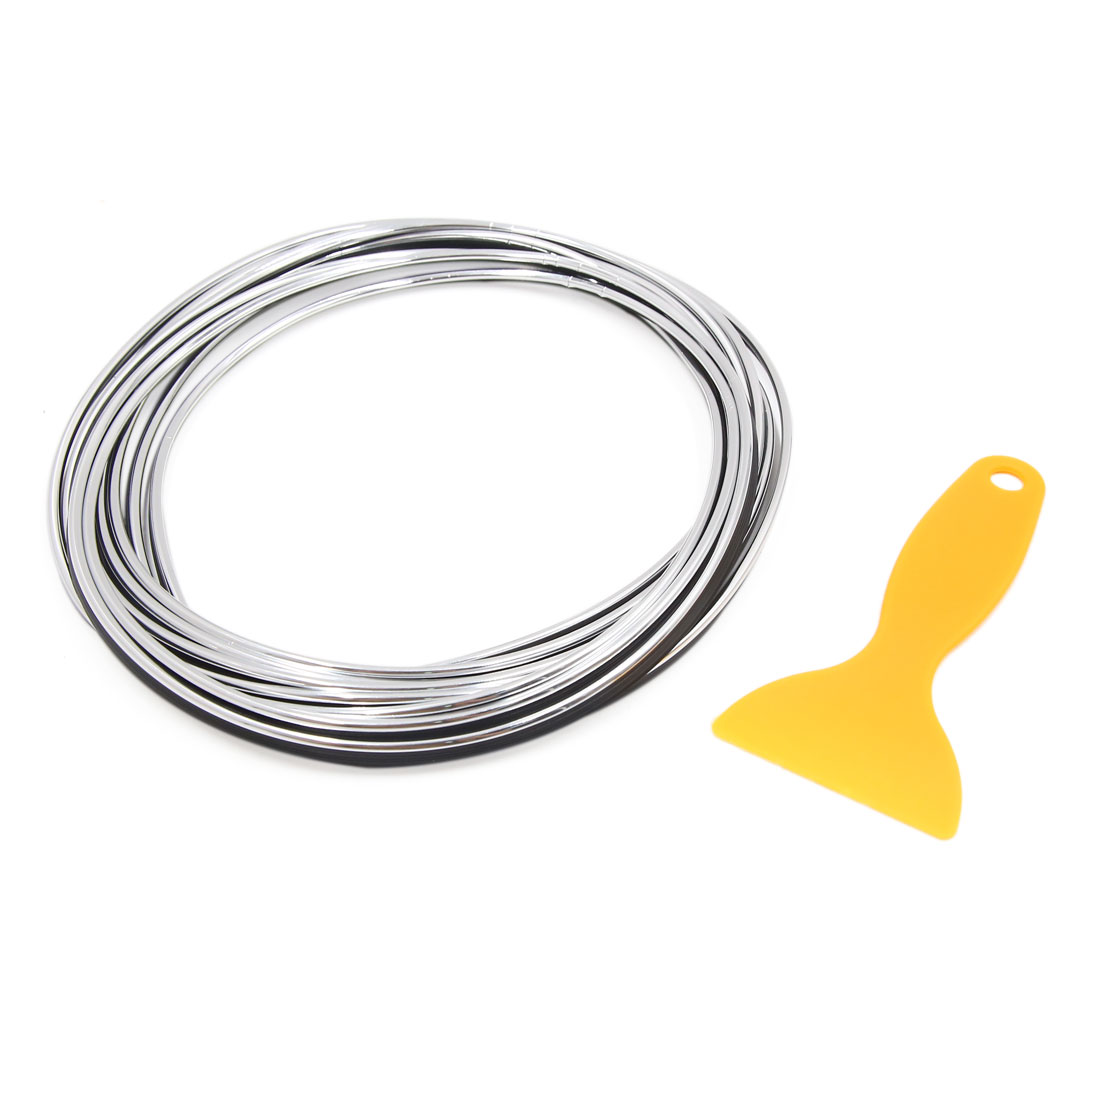 5M Silver Tone Flexible Auto Car Decorative Moulding Trim Strip Line w Scraper